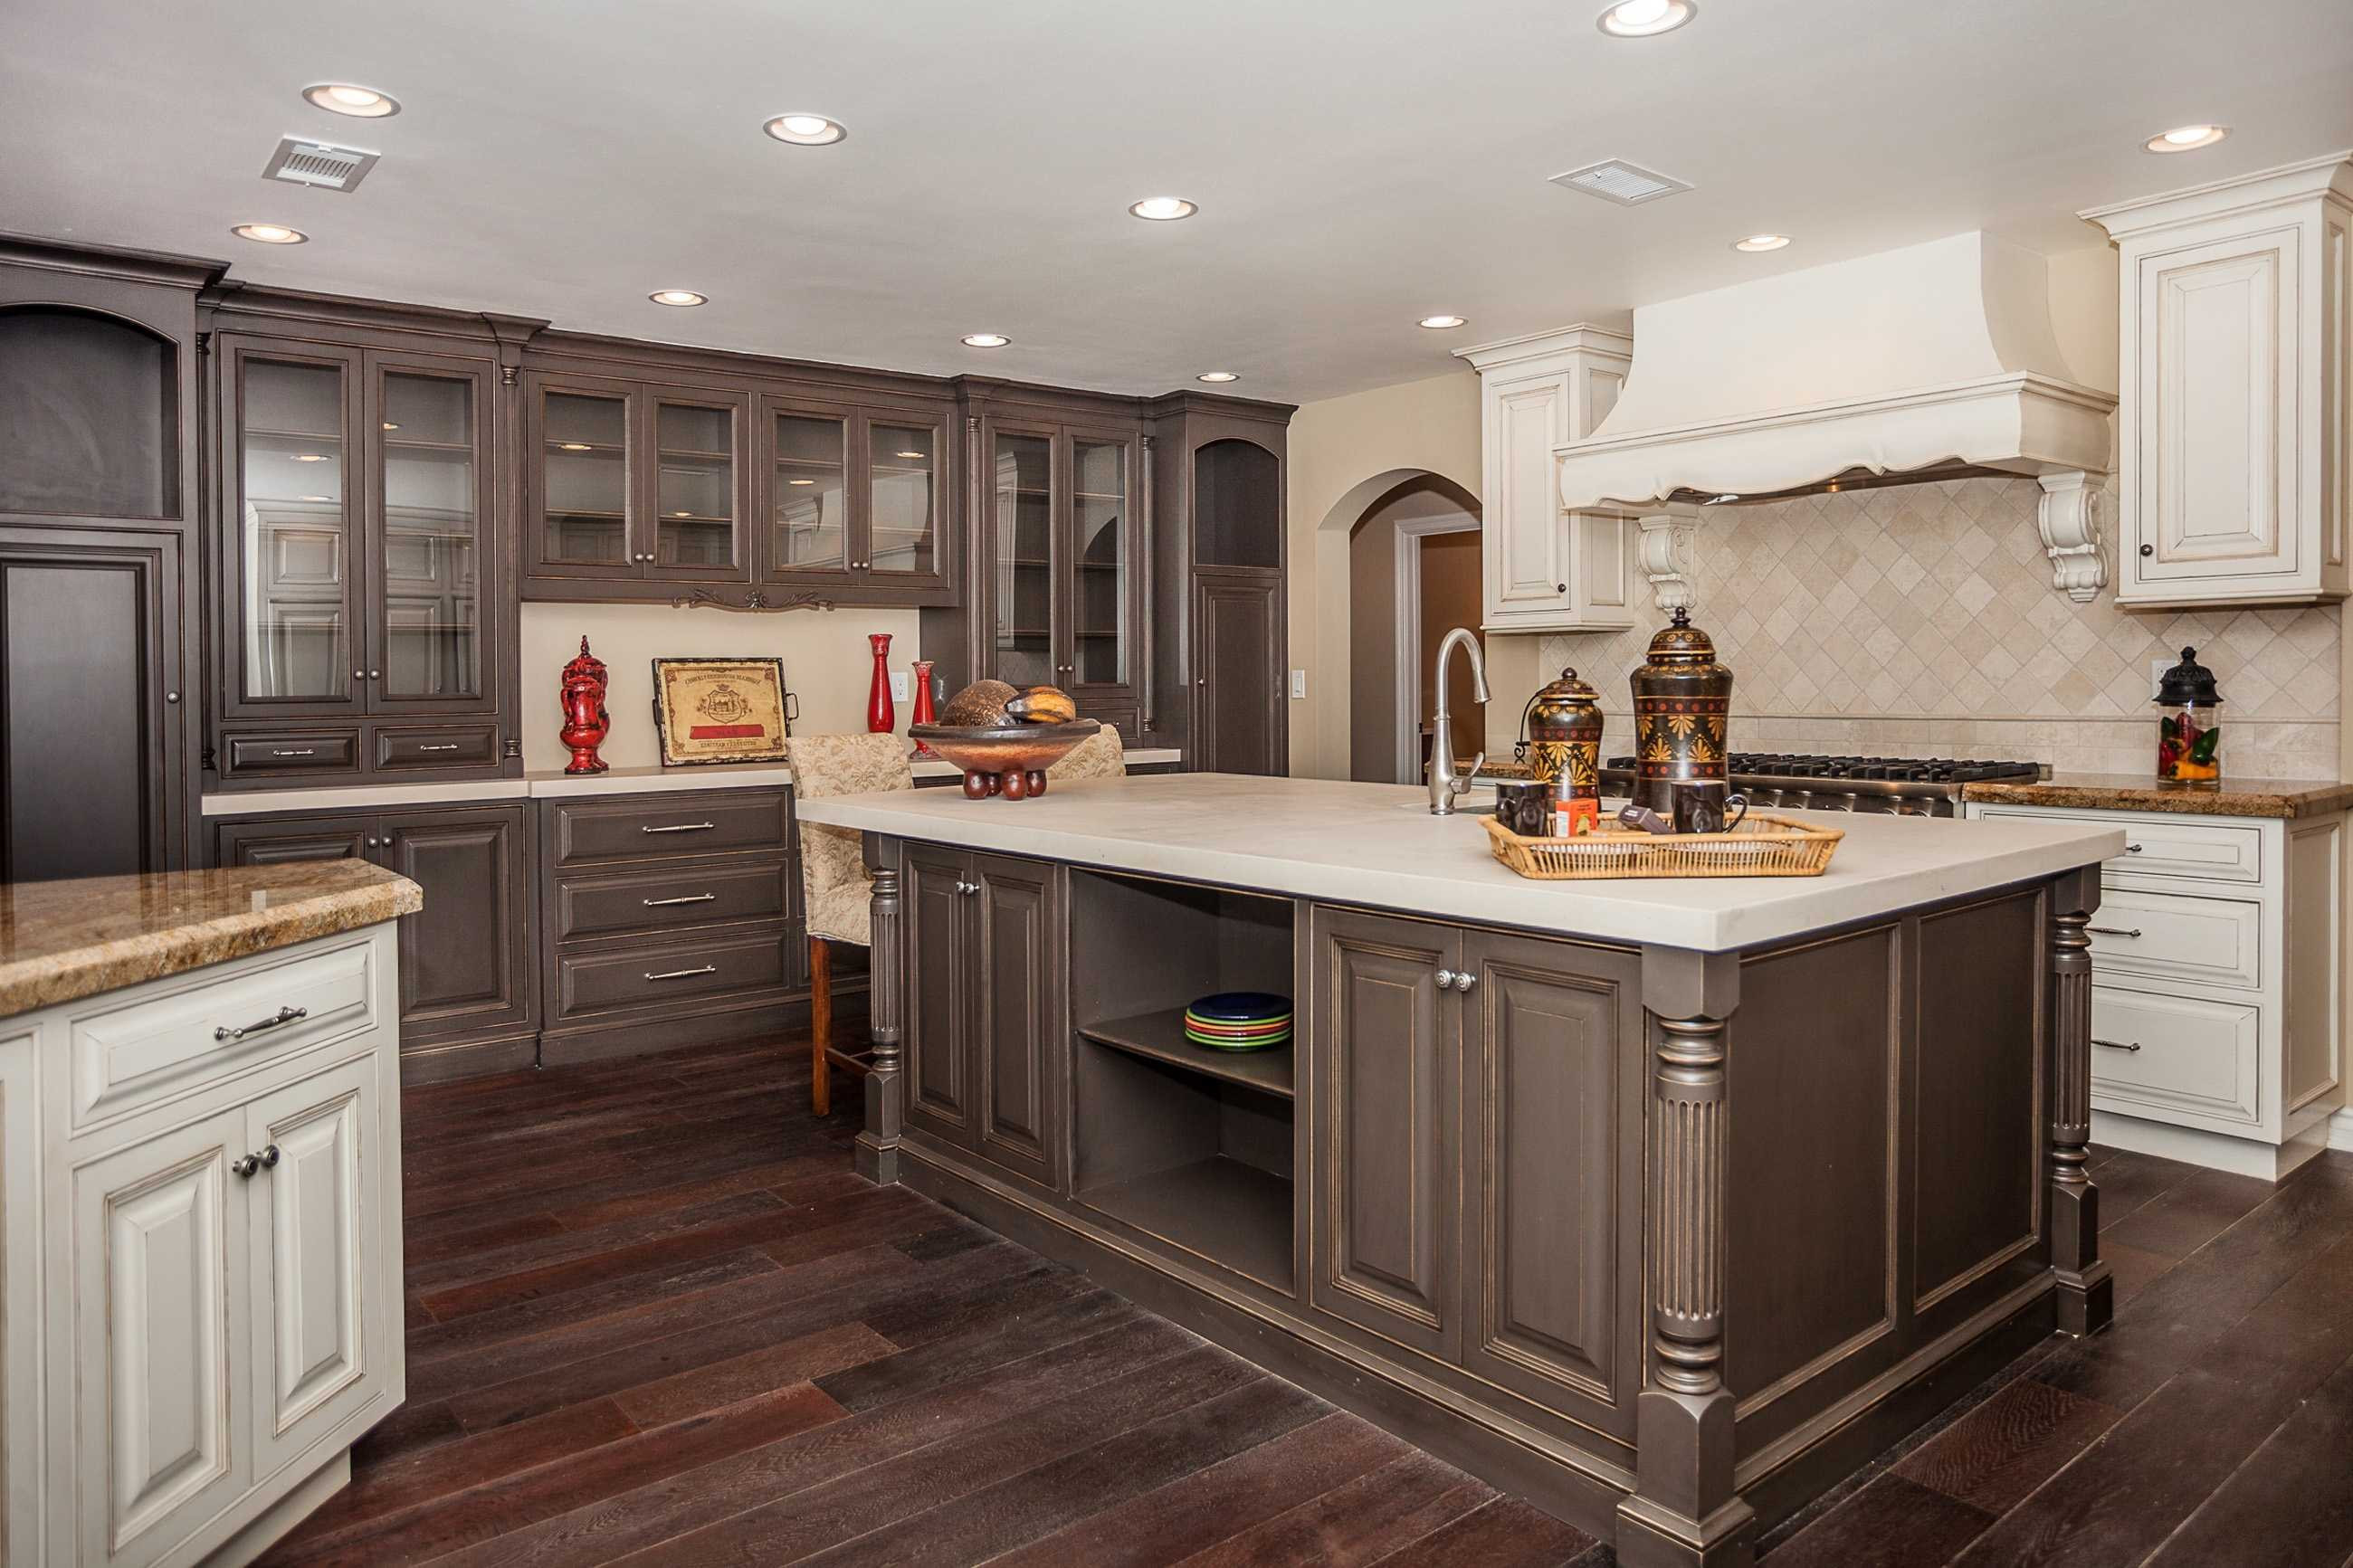 Dark Hardwood Floors with Light Wood Cabinets Of Wood Cabinets with Wood Floors Dark Kitchen Cabinets with Light Pertaining to Wood Cabinets with Wood Floors Dark Kitchen Cabinets with Light Floors thegreenstation